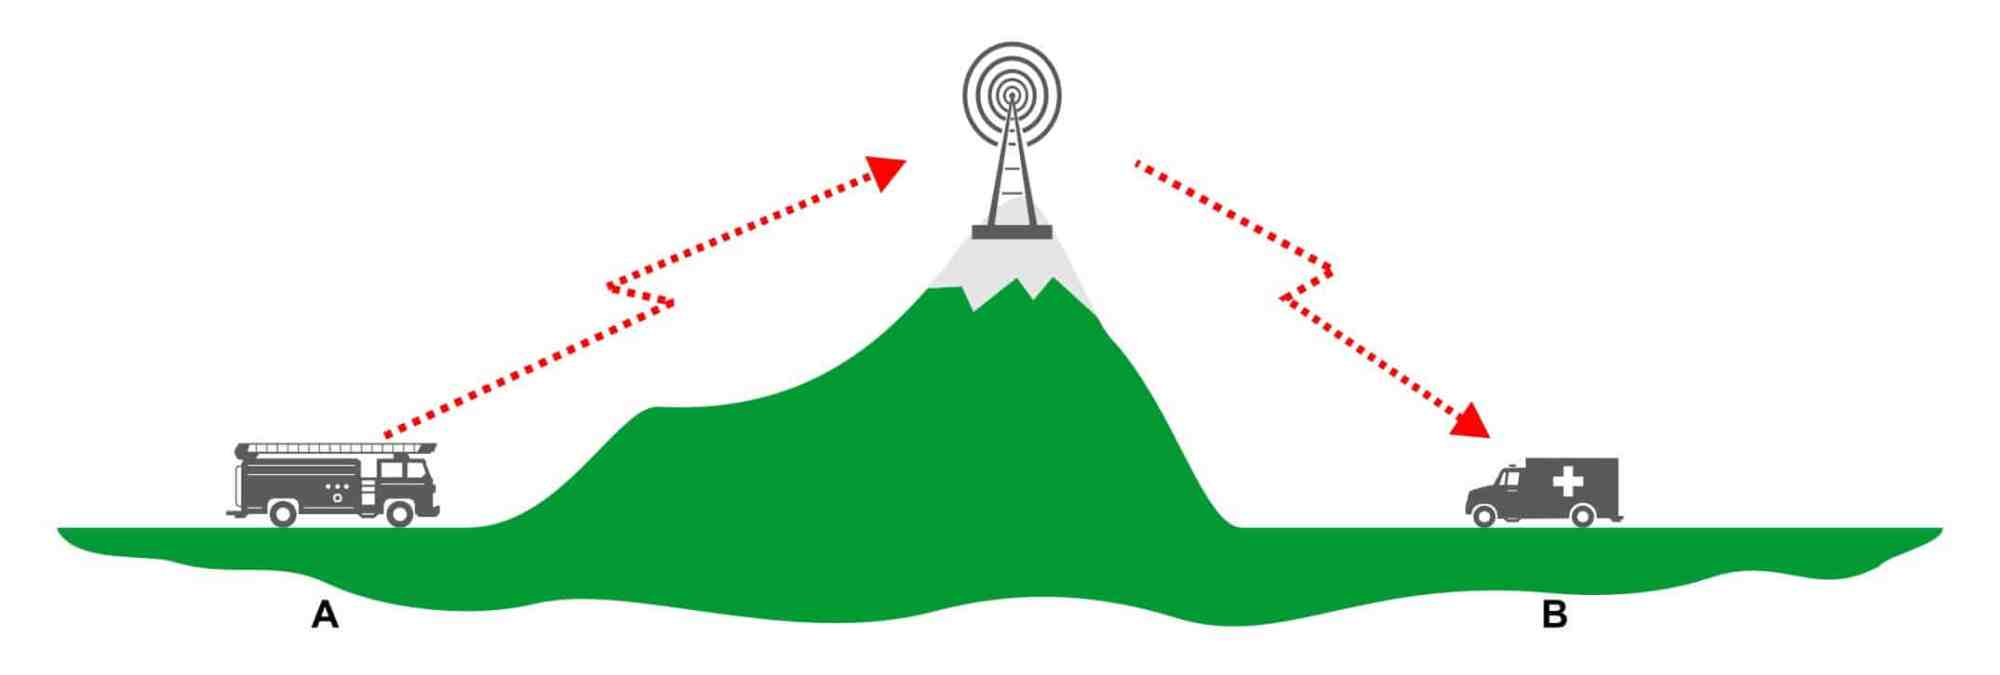 hight resolution of however repeaters are used even when there are no hills in the way as they are excellent for extending range a repeater is an extremely powerful radio